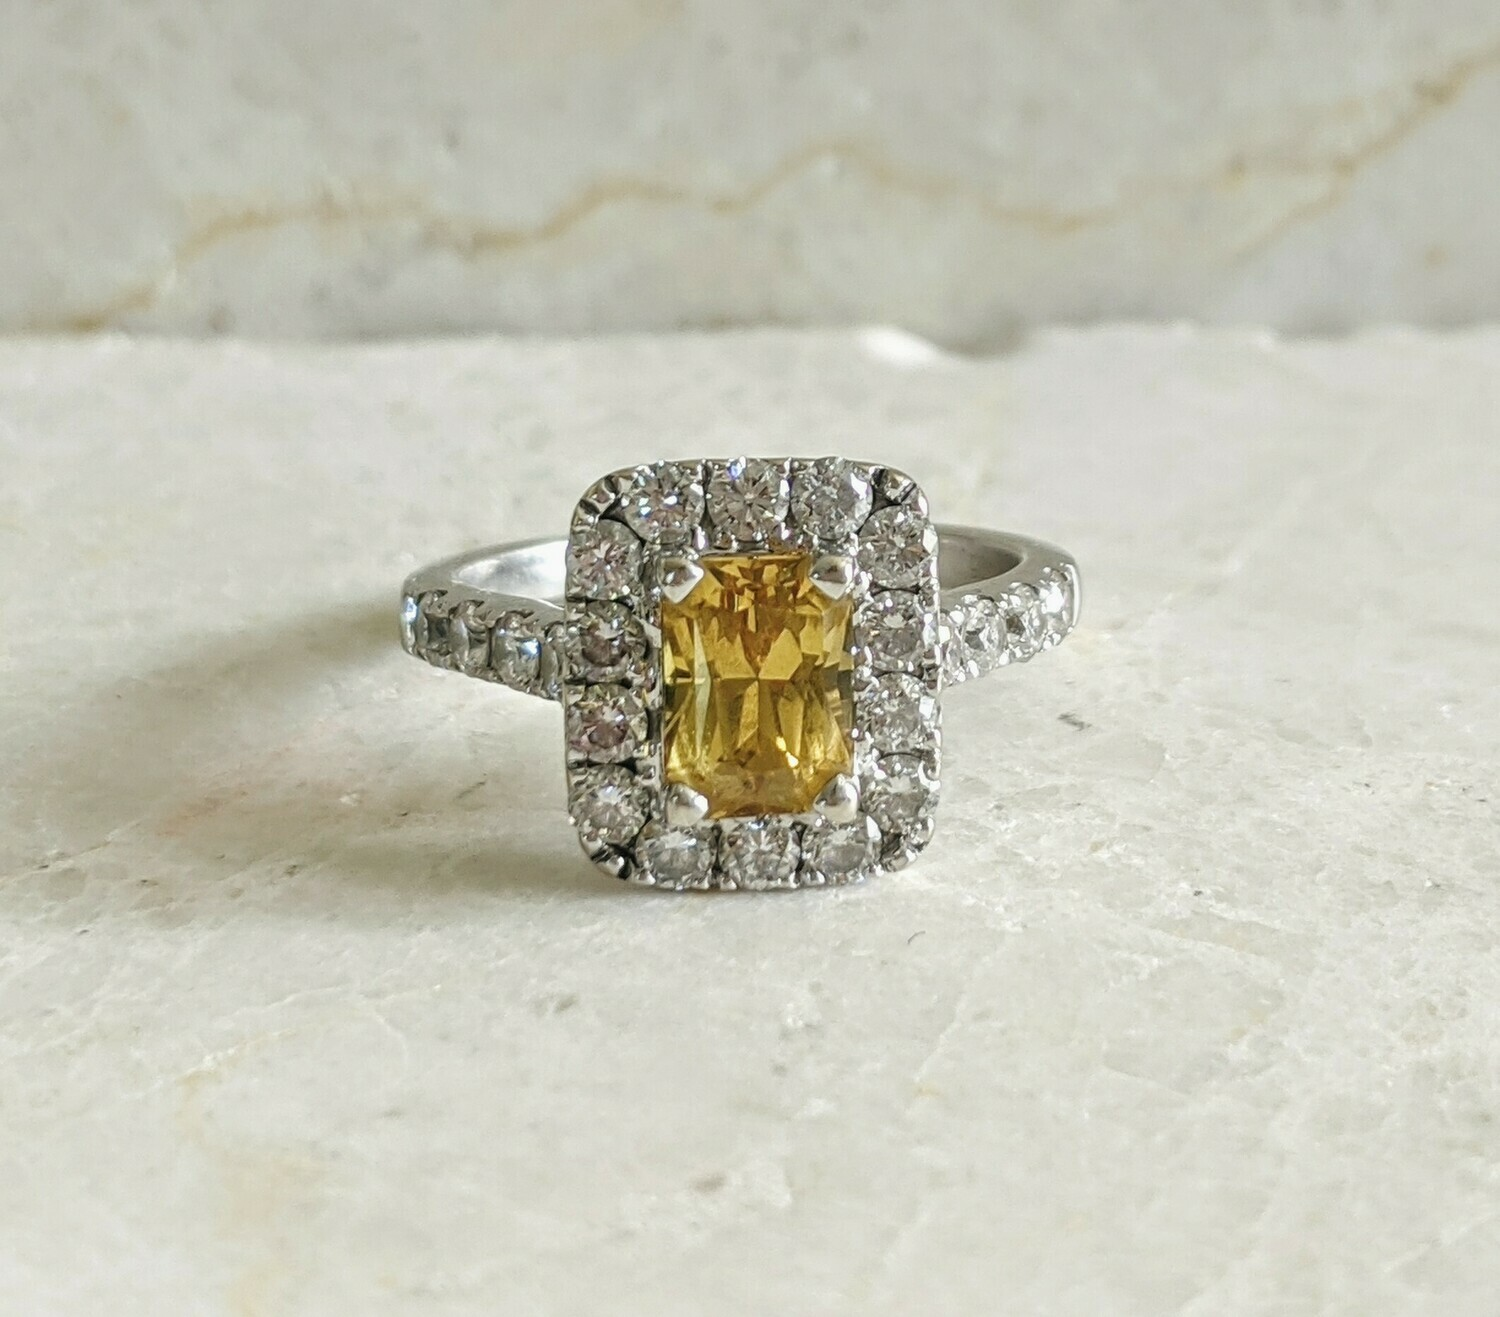 Natural 2.09 ct tw Yellow Sapphire and Diamond Engagement Ring 5.75